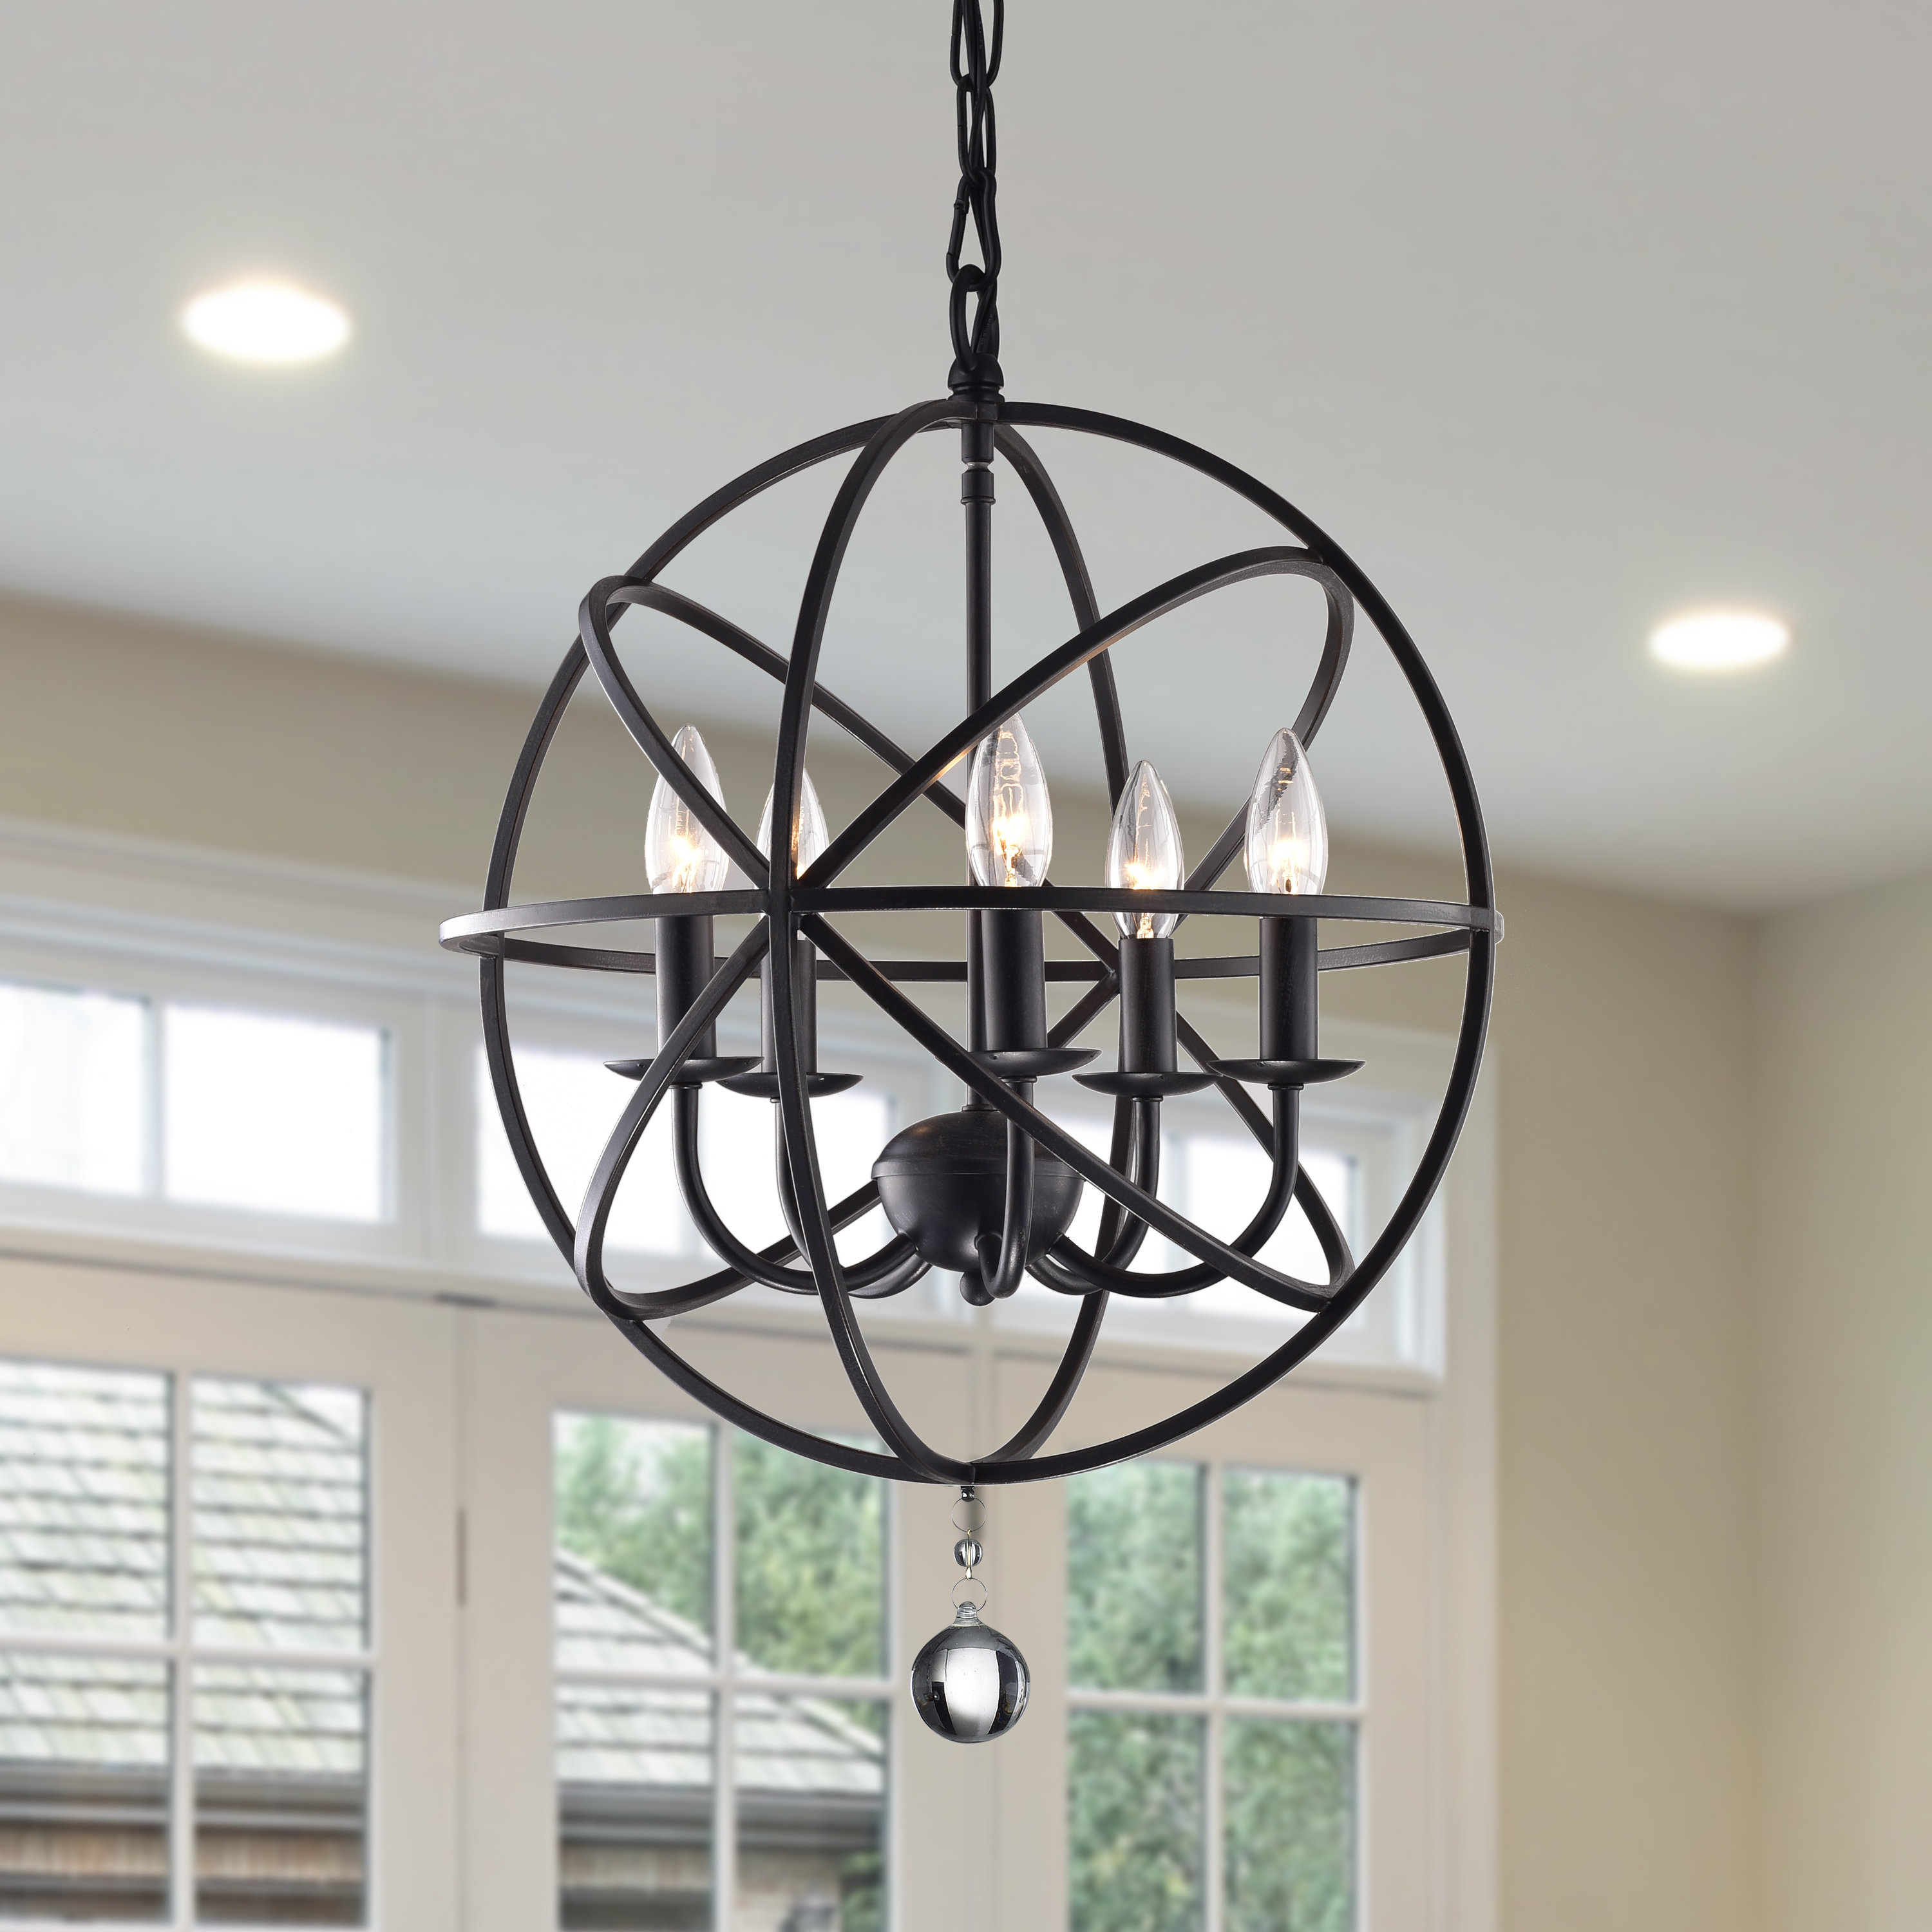 Joon 6 Light Globe Chandeliers With Favorite Verlene Foyer 5 Light Globe Chandelier (View 13 of 20)